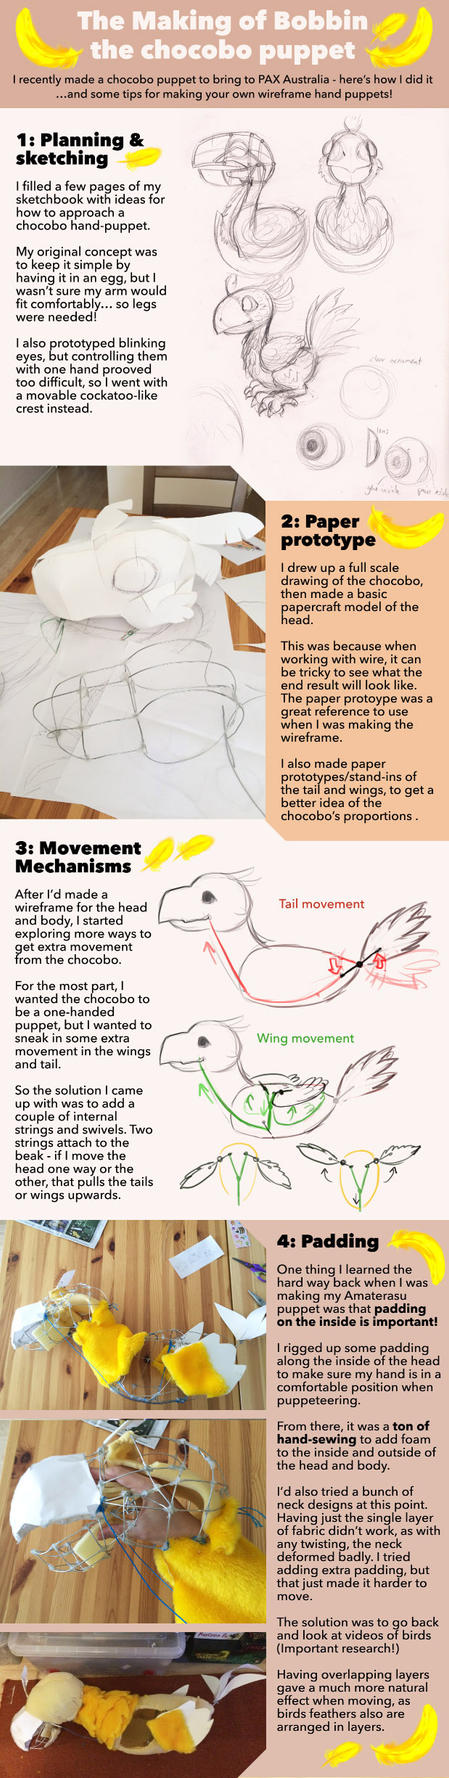 Making of a Chocobo Puppet Part 1 by Risachantag